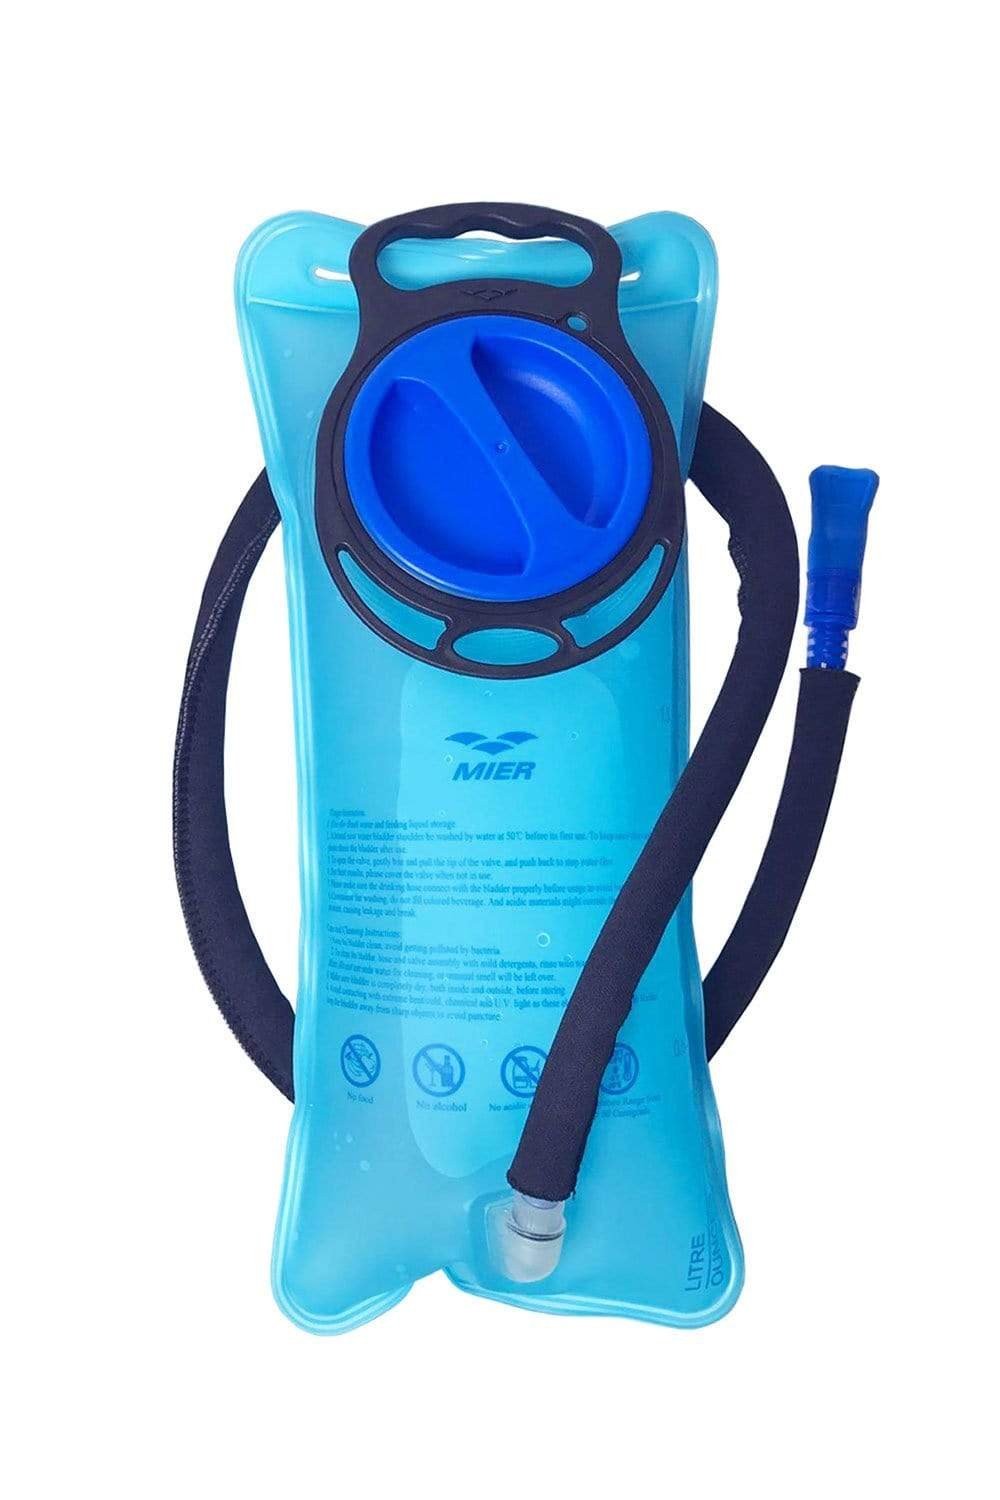 MIER Hydration Bladder 2L Water Reservoir for Running, Biking, Camping, Hiking, Cycling, Insulated Tube, Large Opening Water bag Blue / 2L MIER